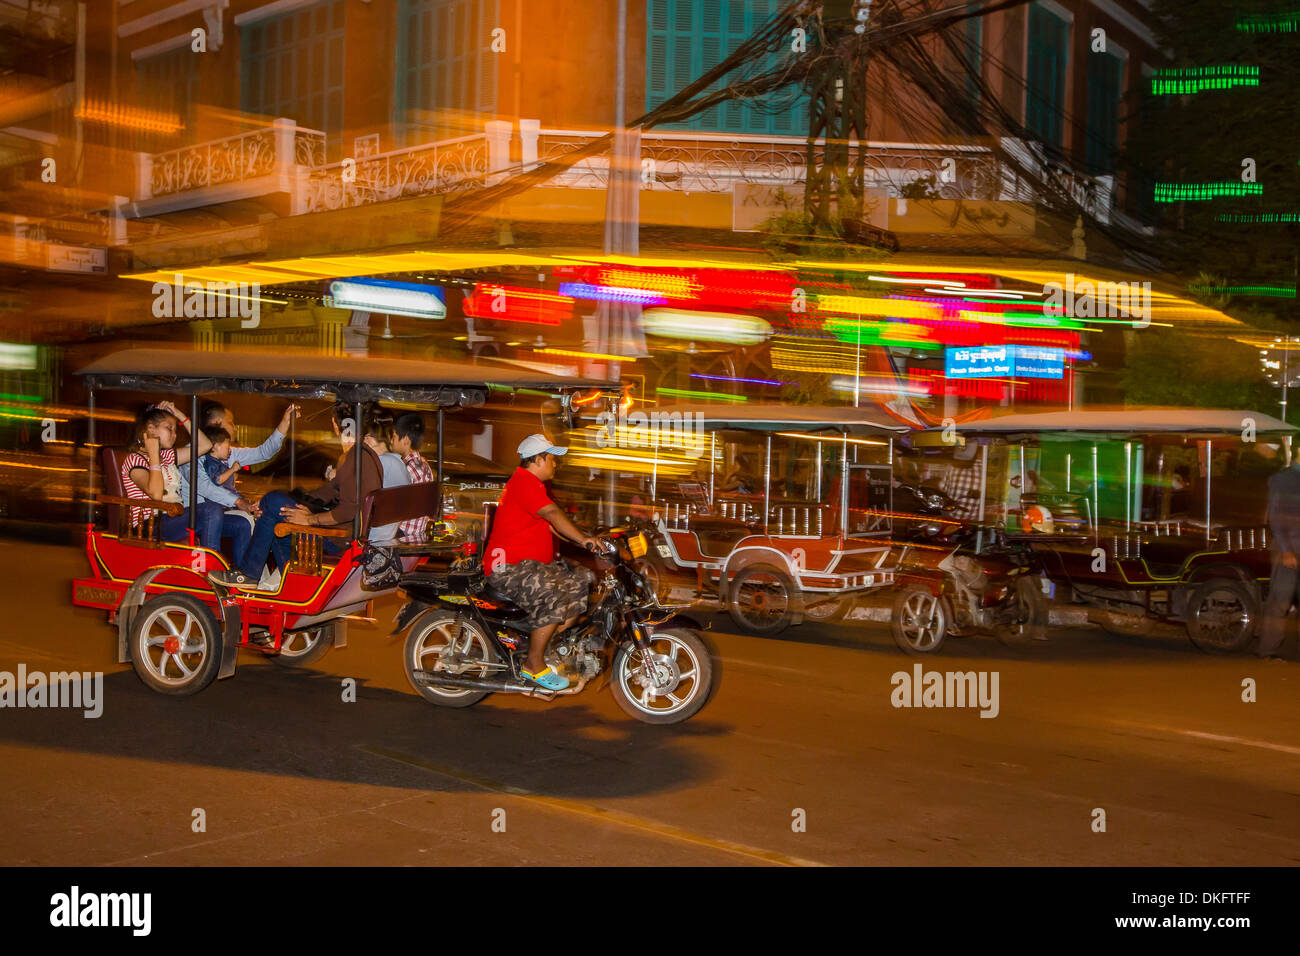 Motion blur image of a tuk-tuk at night in the capital city of Phnom Penh, Cambodia, Indochina, Southeast Asia, Asia - Stock Image